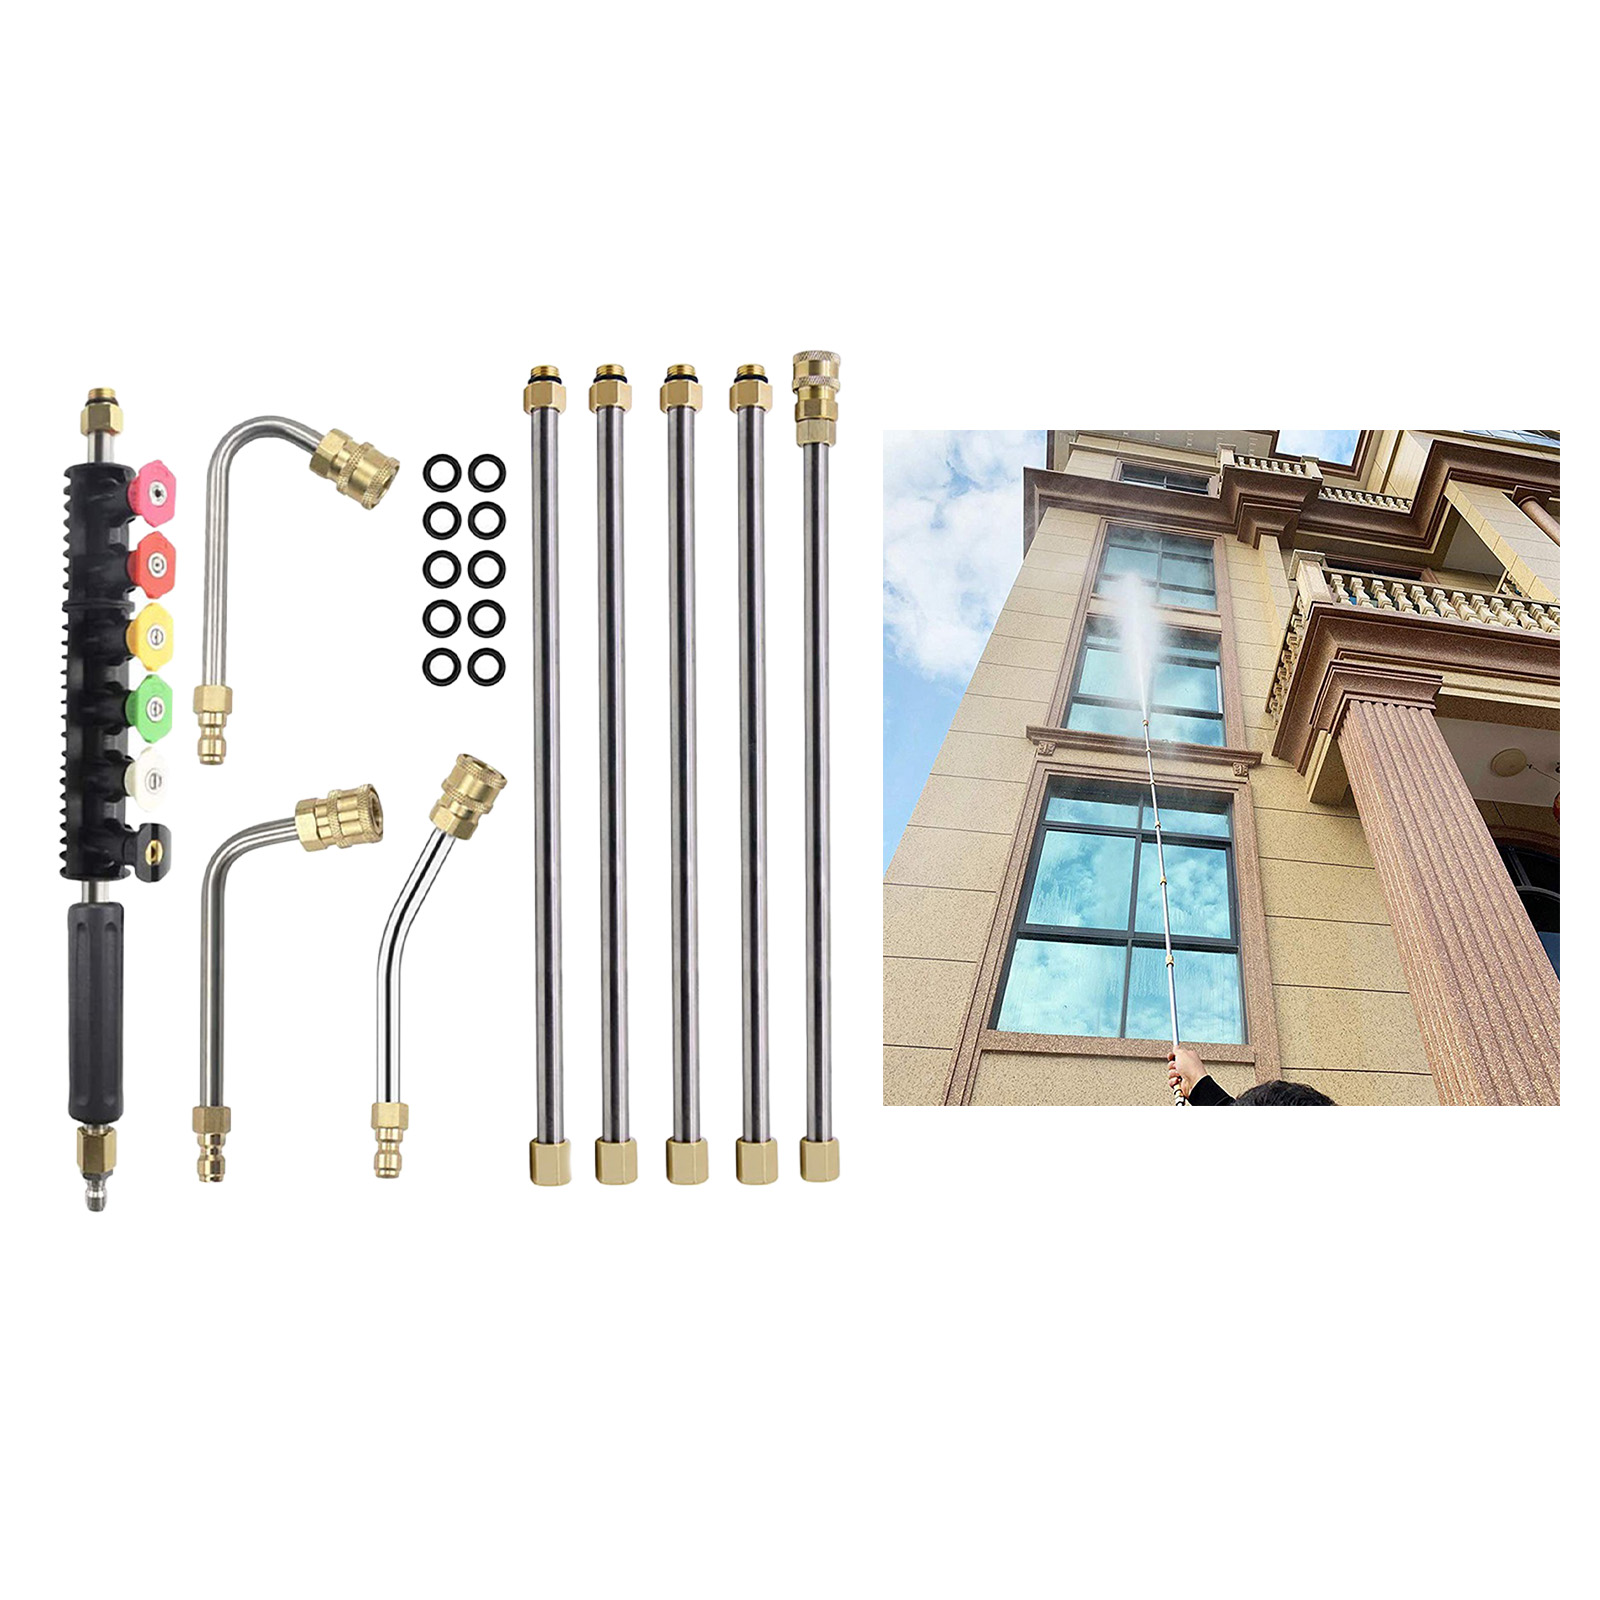 Pressure Washer Extension Wand,Power Washer Lance with Spray Nozzle Tips,30°,90°,120° Curved Rod,1/4